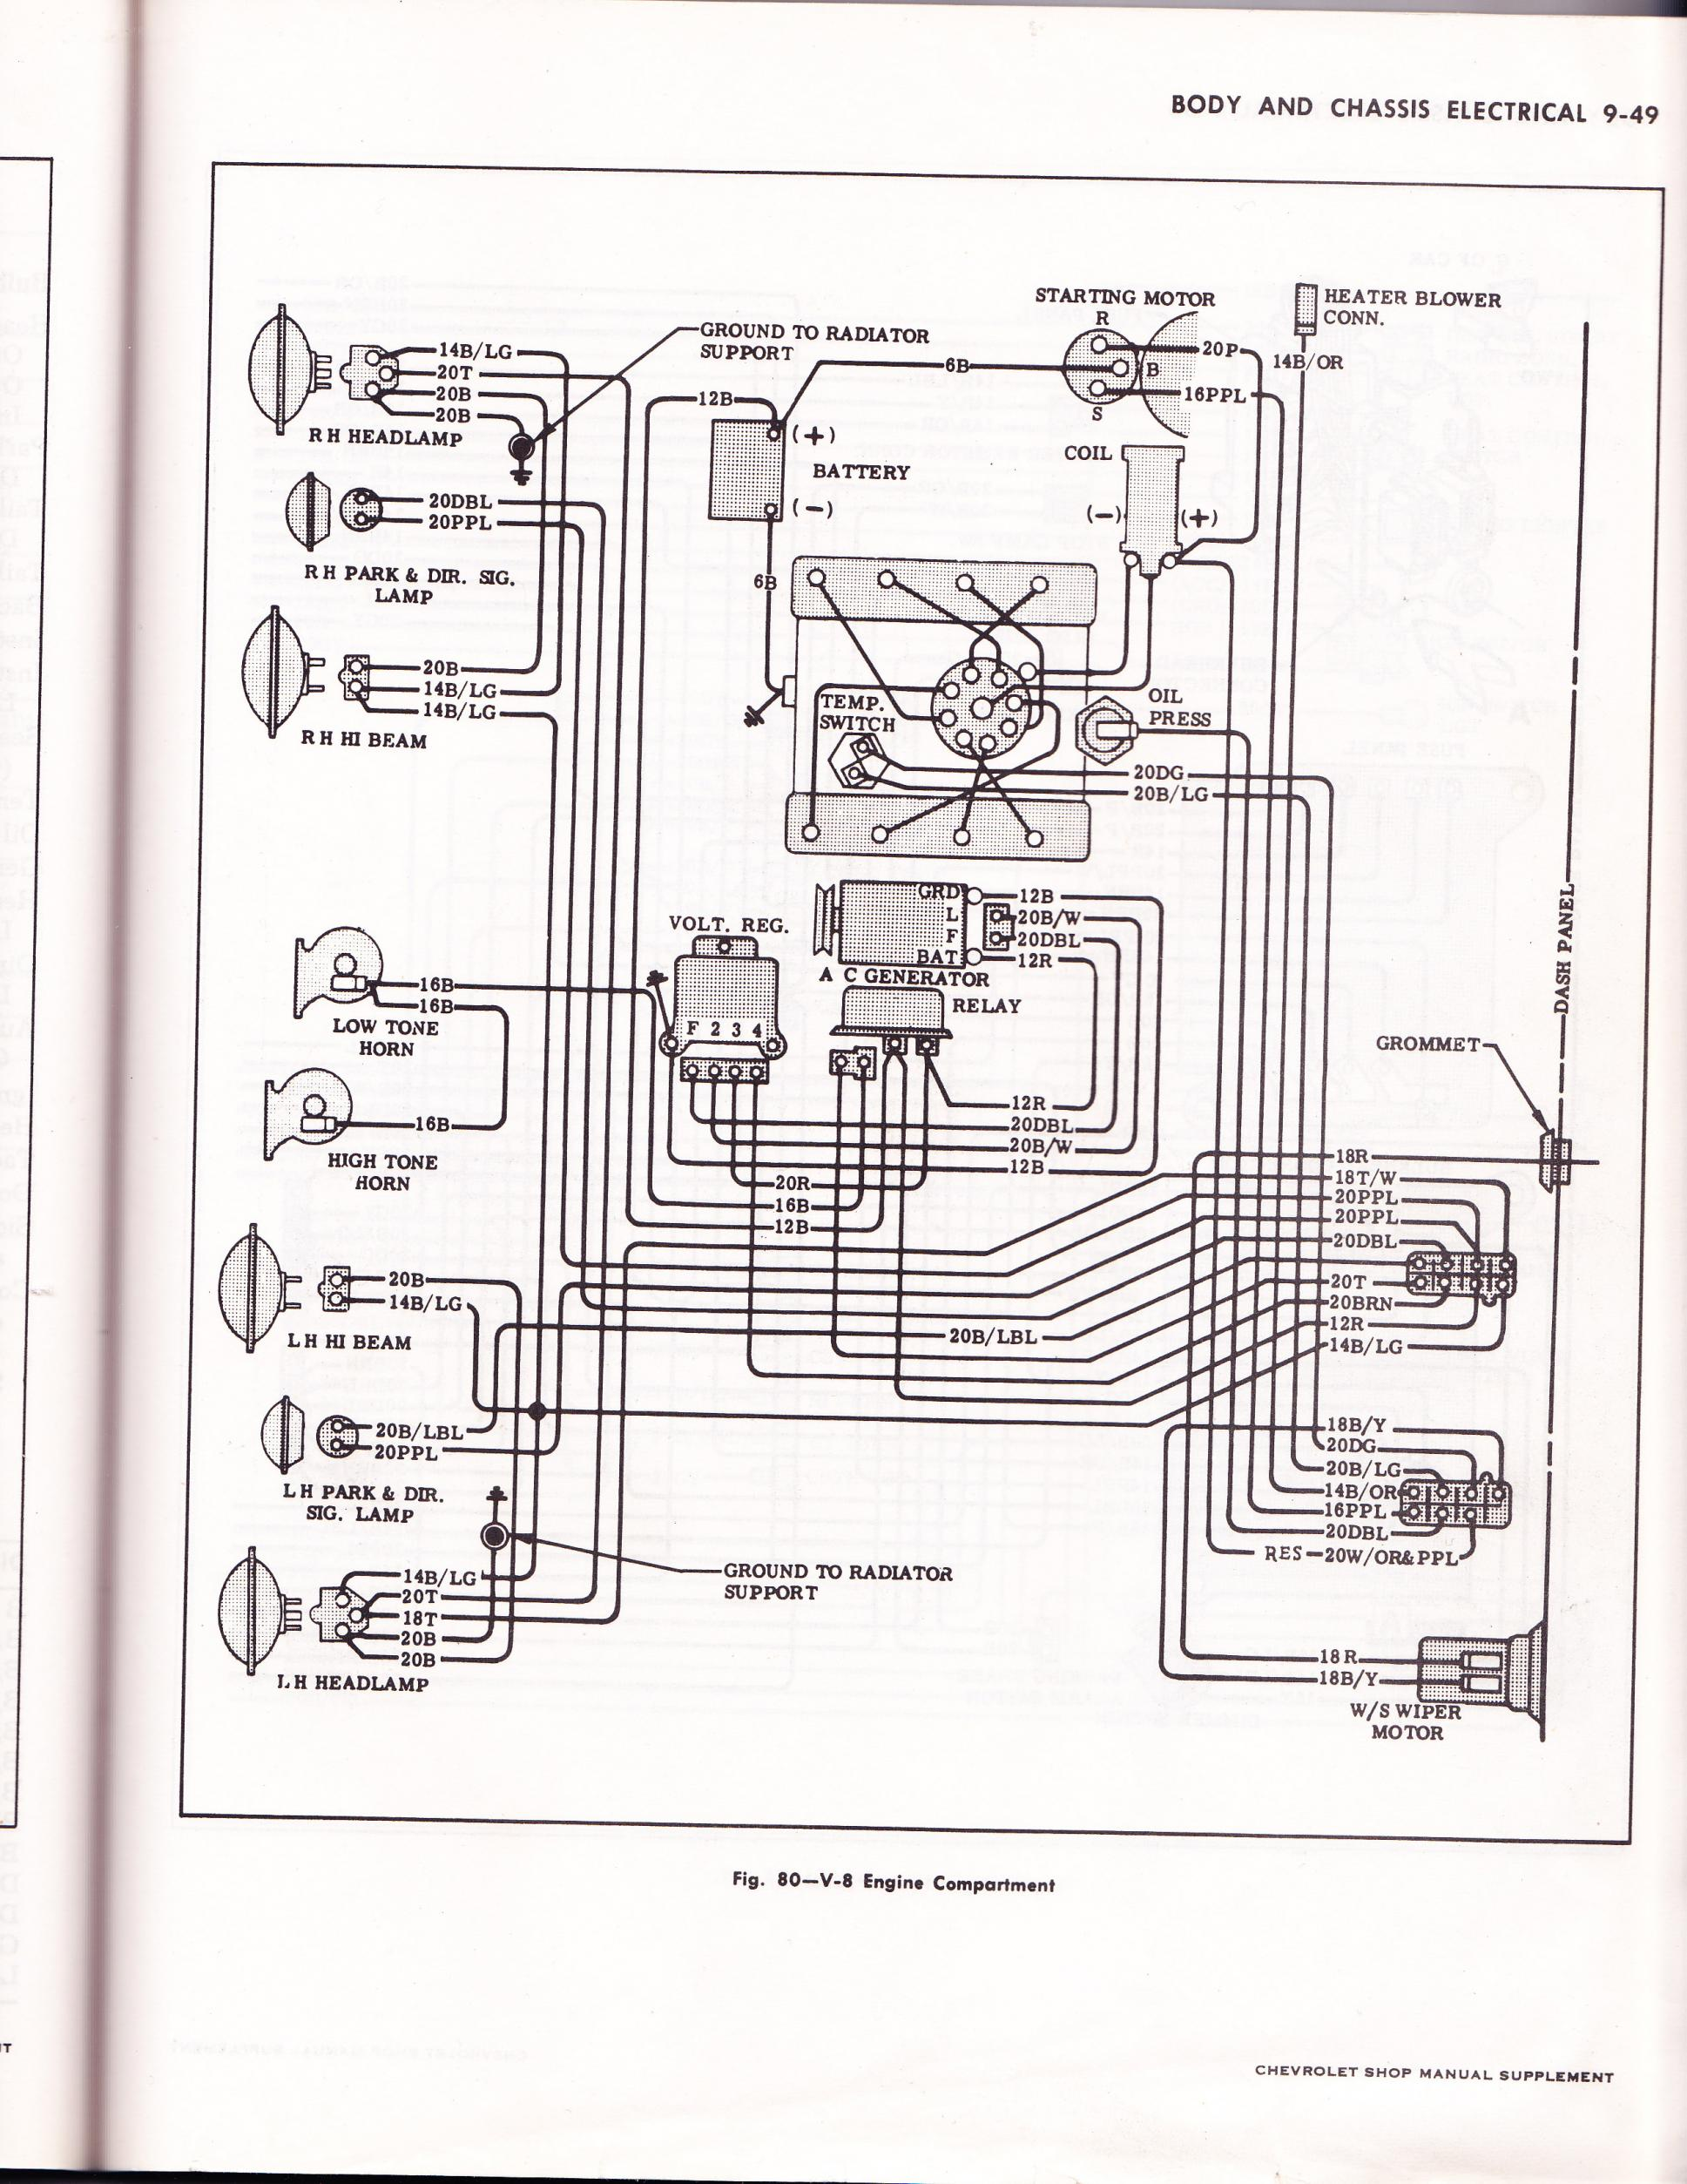 Engine Wiring Diagram Dodge W350. Dodge. Auto Wiring Diagram